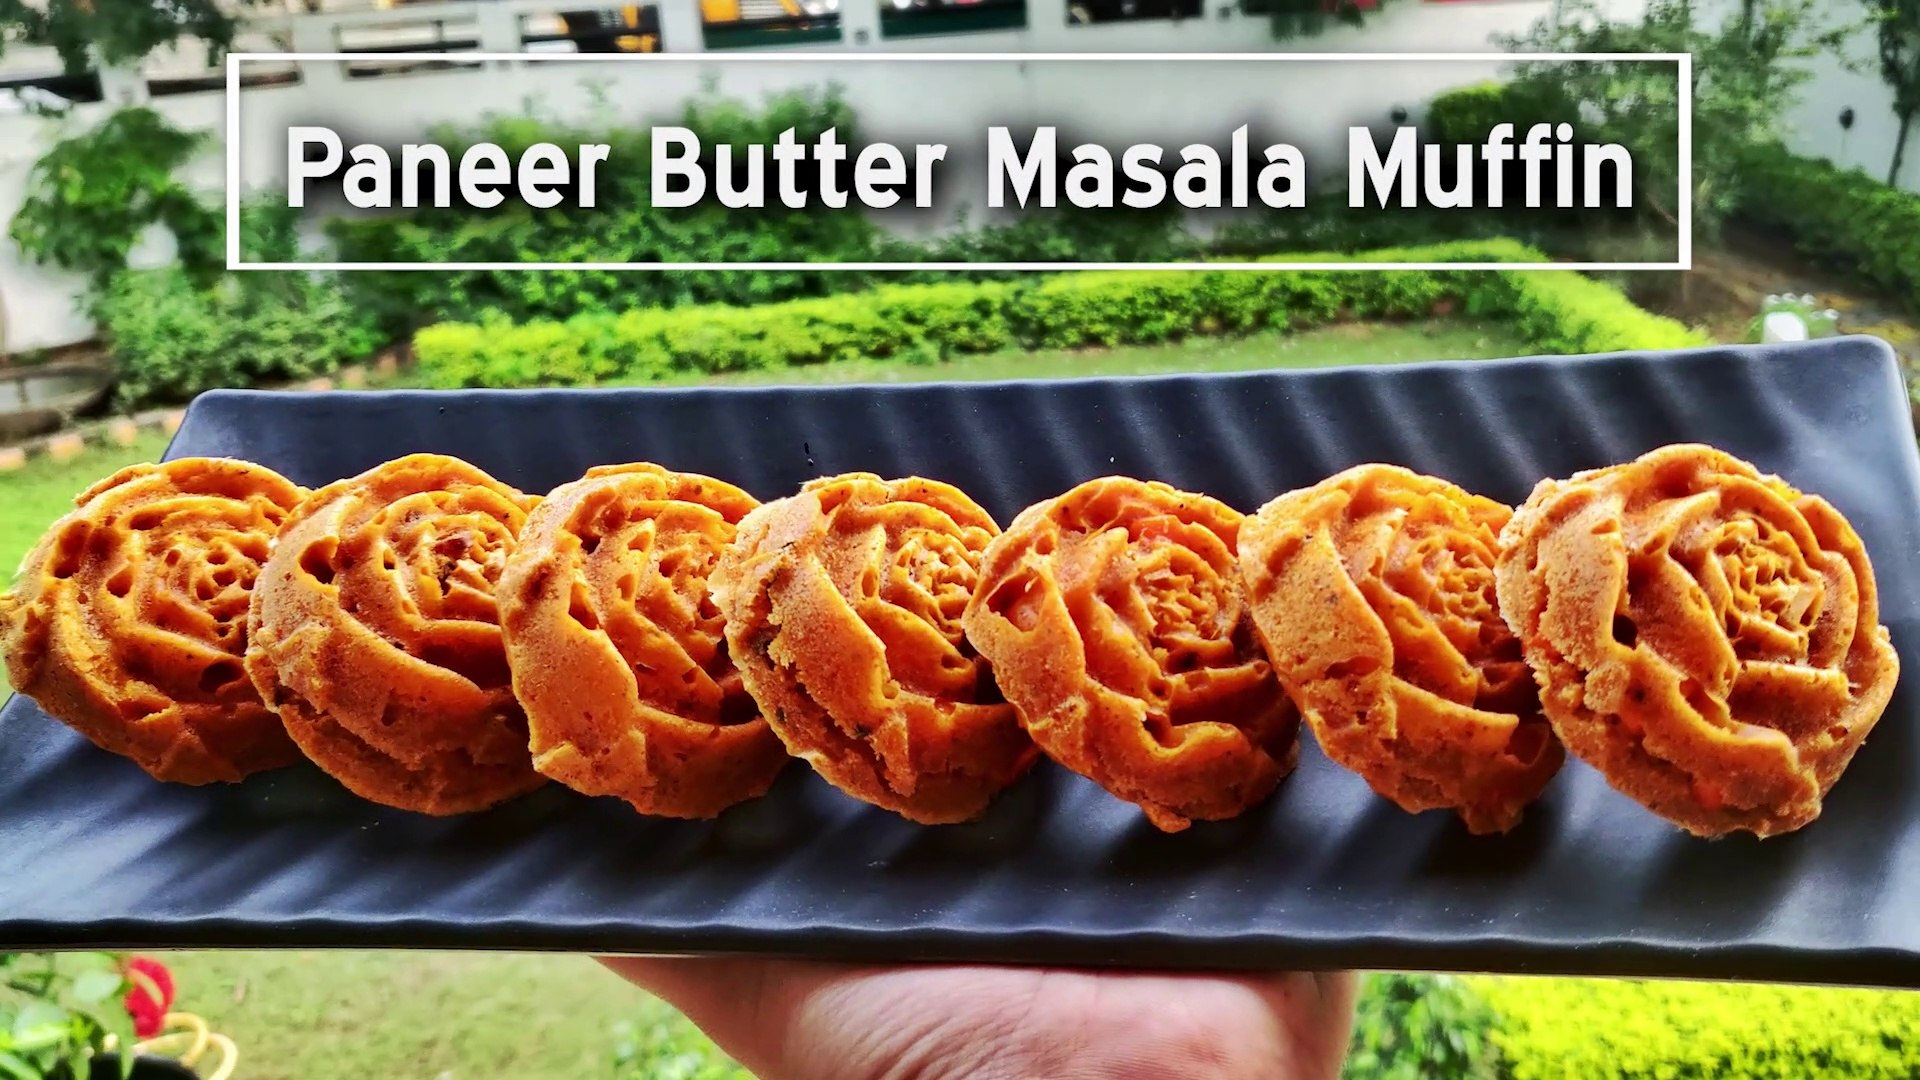 SlowMo Prep of How to use Paneer Butter Masala in Very Unique Way | PBM Muffin | Unique Paneer Butte